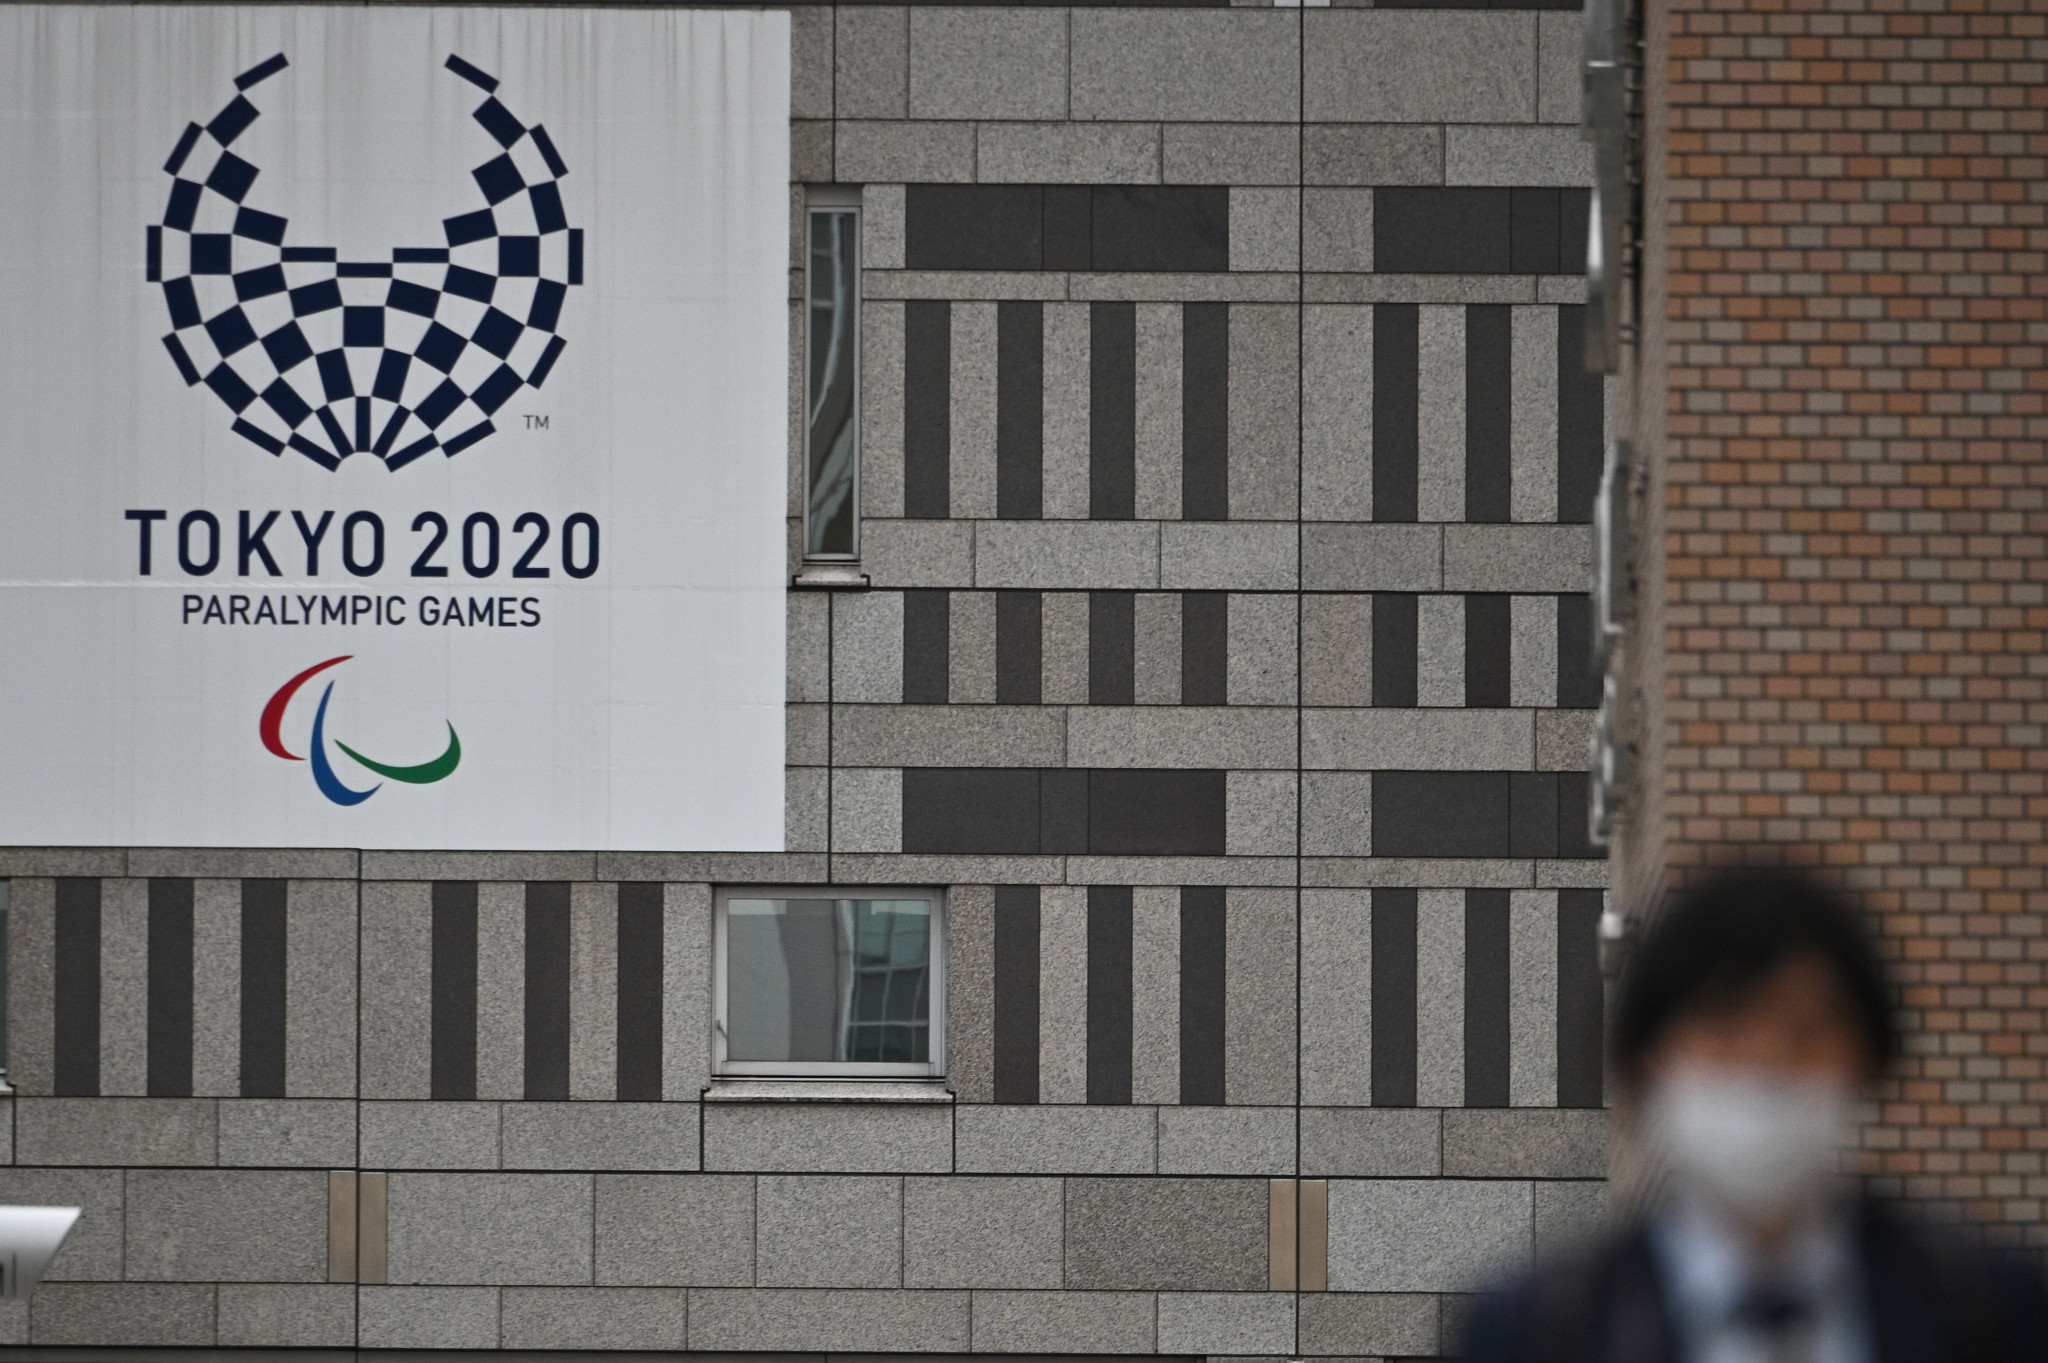 The postponement of the Tokyo 2020 Paralympics has left a void in the competition calendar ©Getty Images